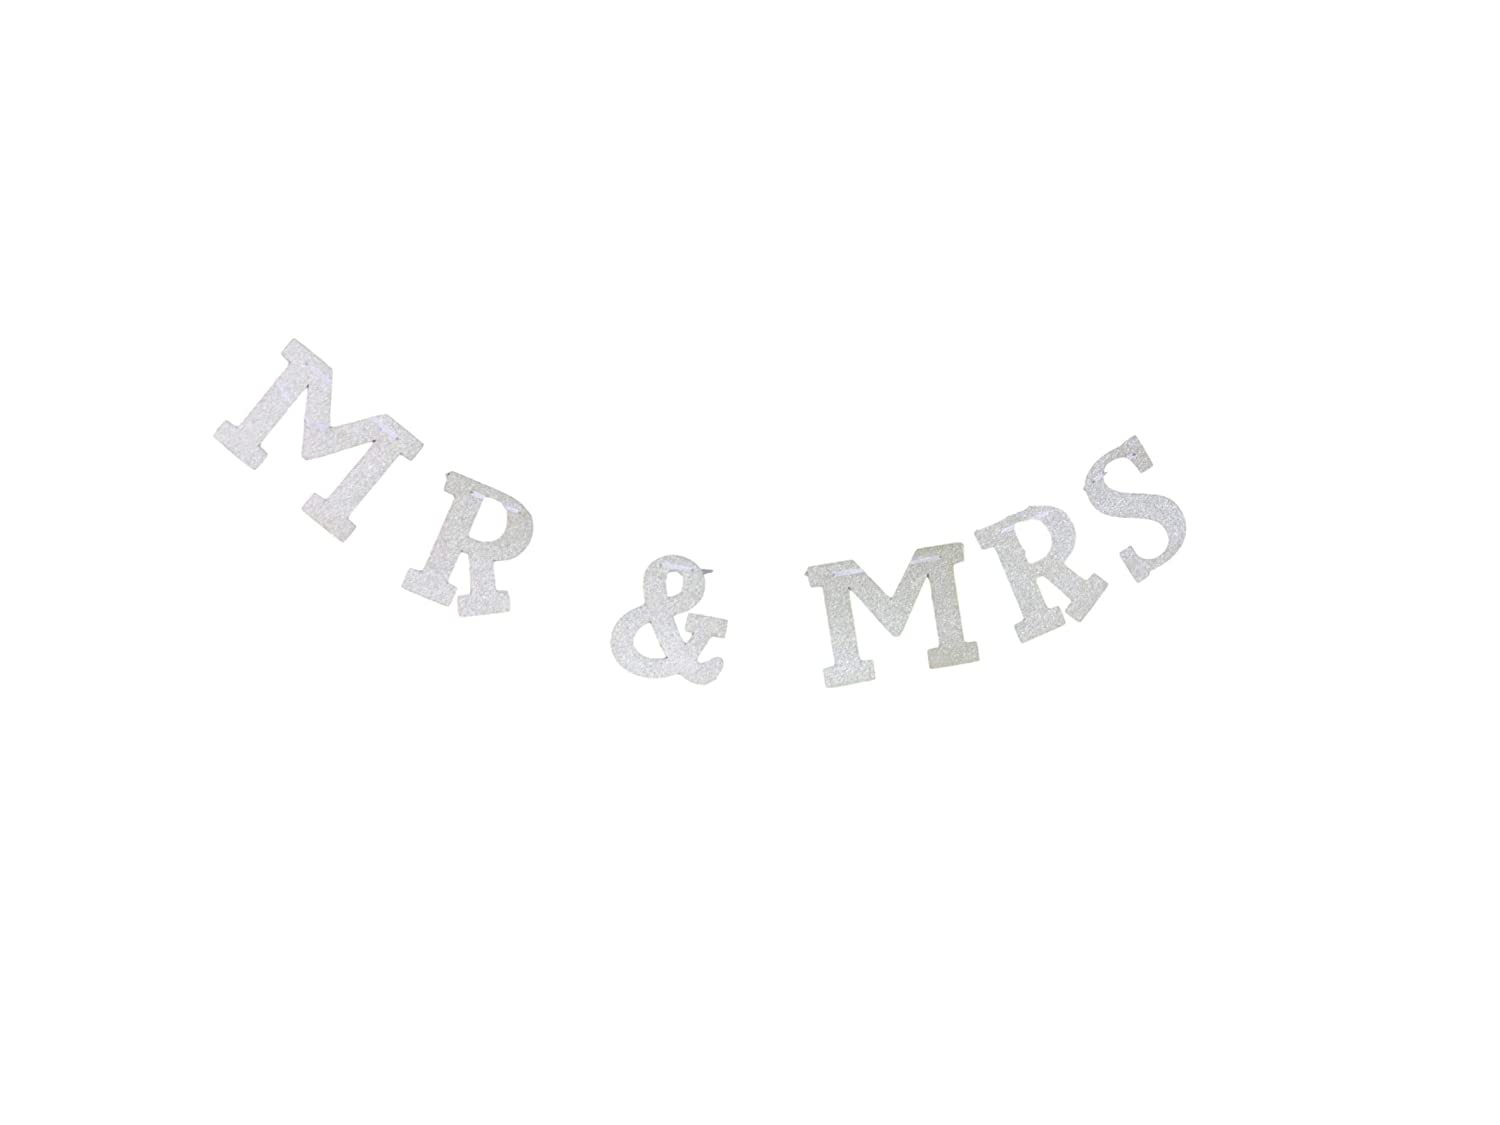 Bridal Showers Hen Parties Mr and Mrs Silver Glitter Banner for Weddings